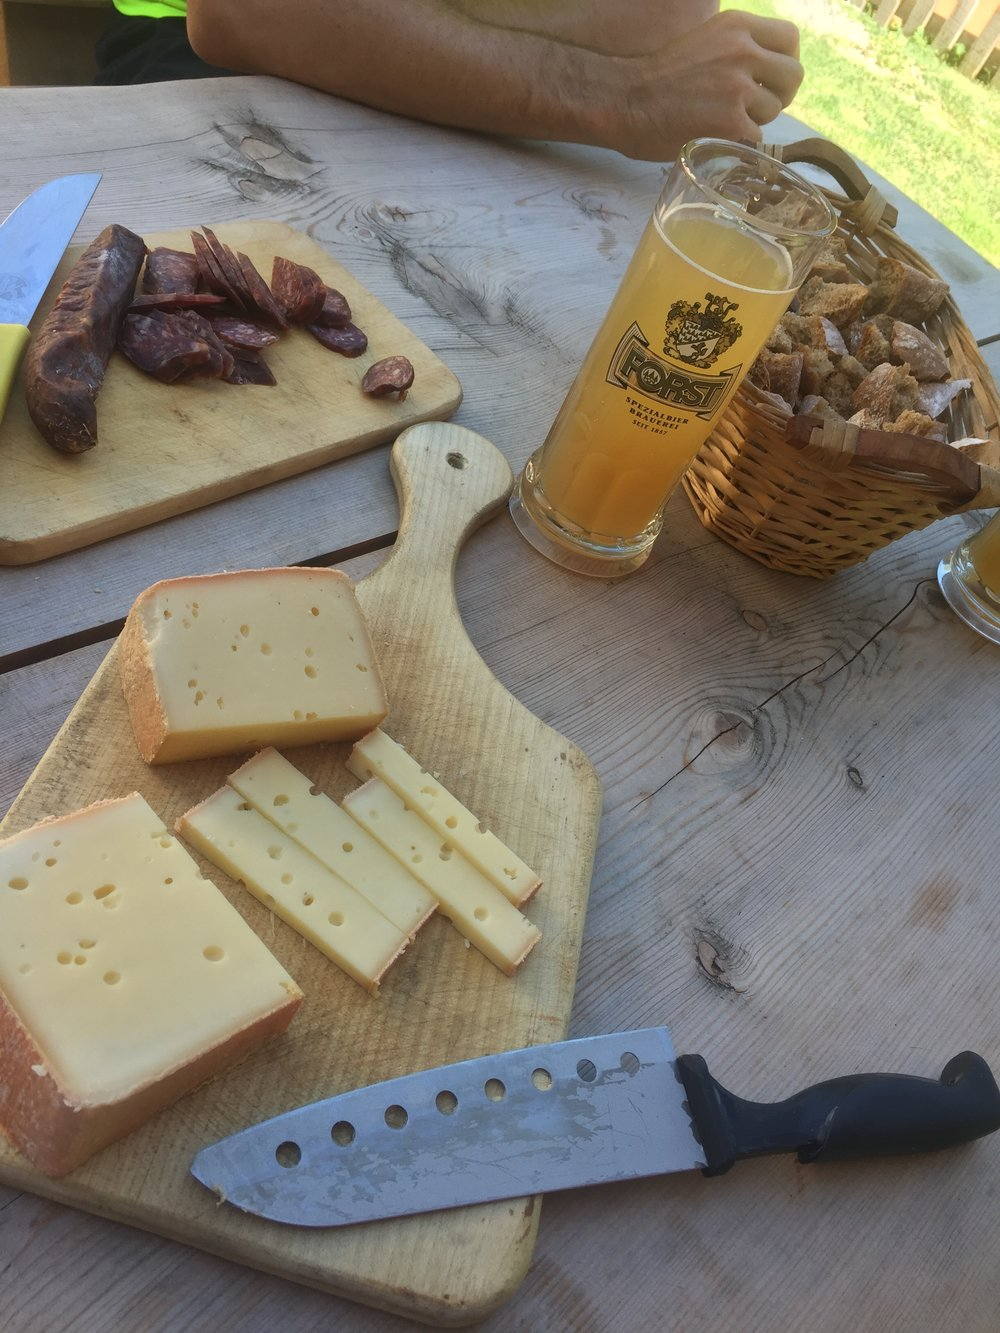 Homemade cheese, sausages, apple juice and bread